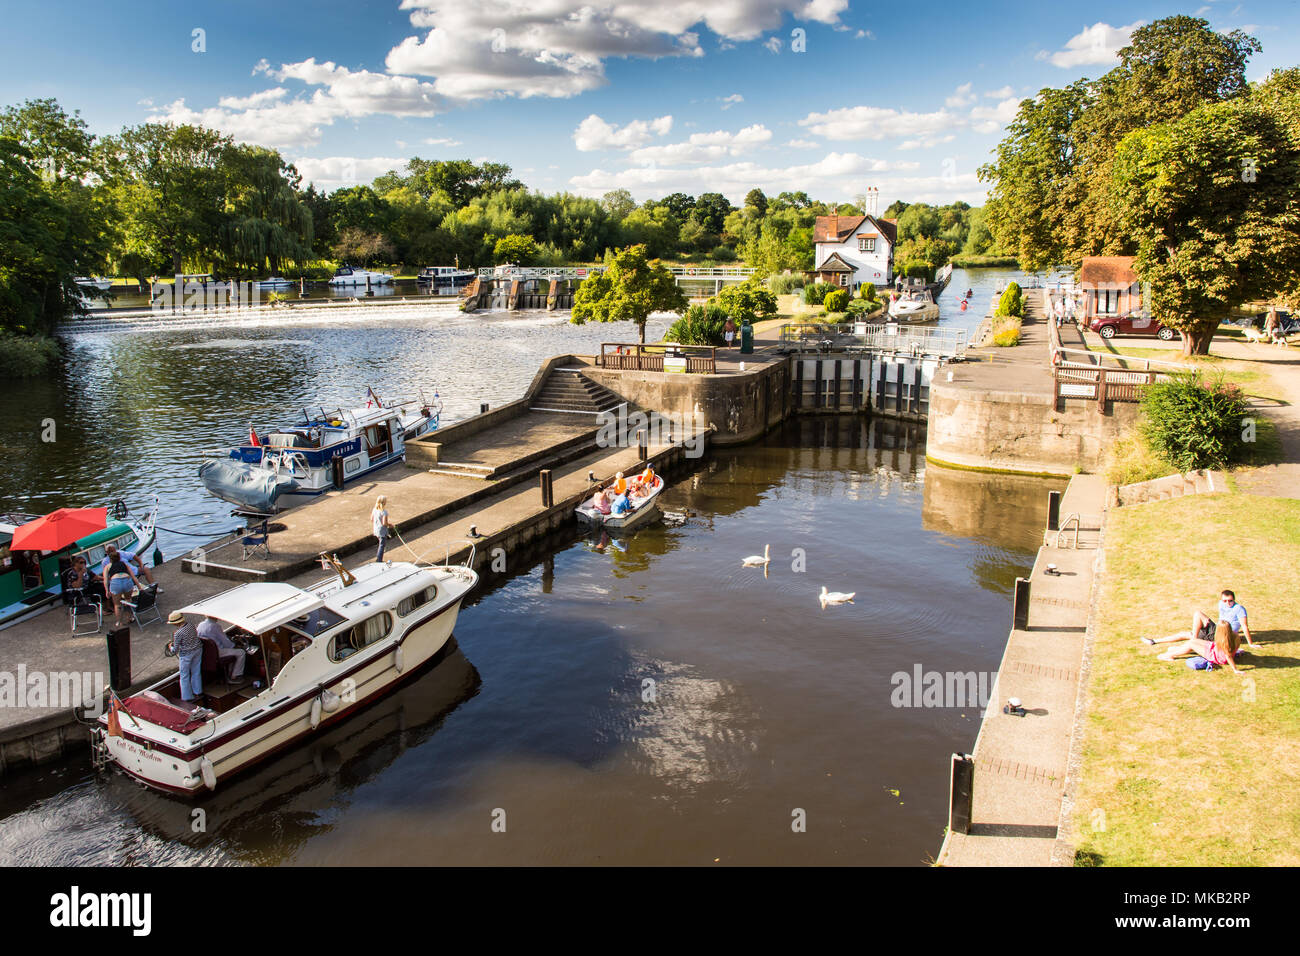 Reading, England, UK - August 29, 2016: The weir and lock on the River Thames at Goring in Oxfordshire. Stock Photo